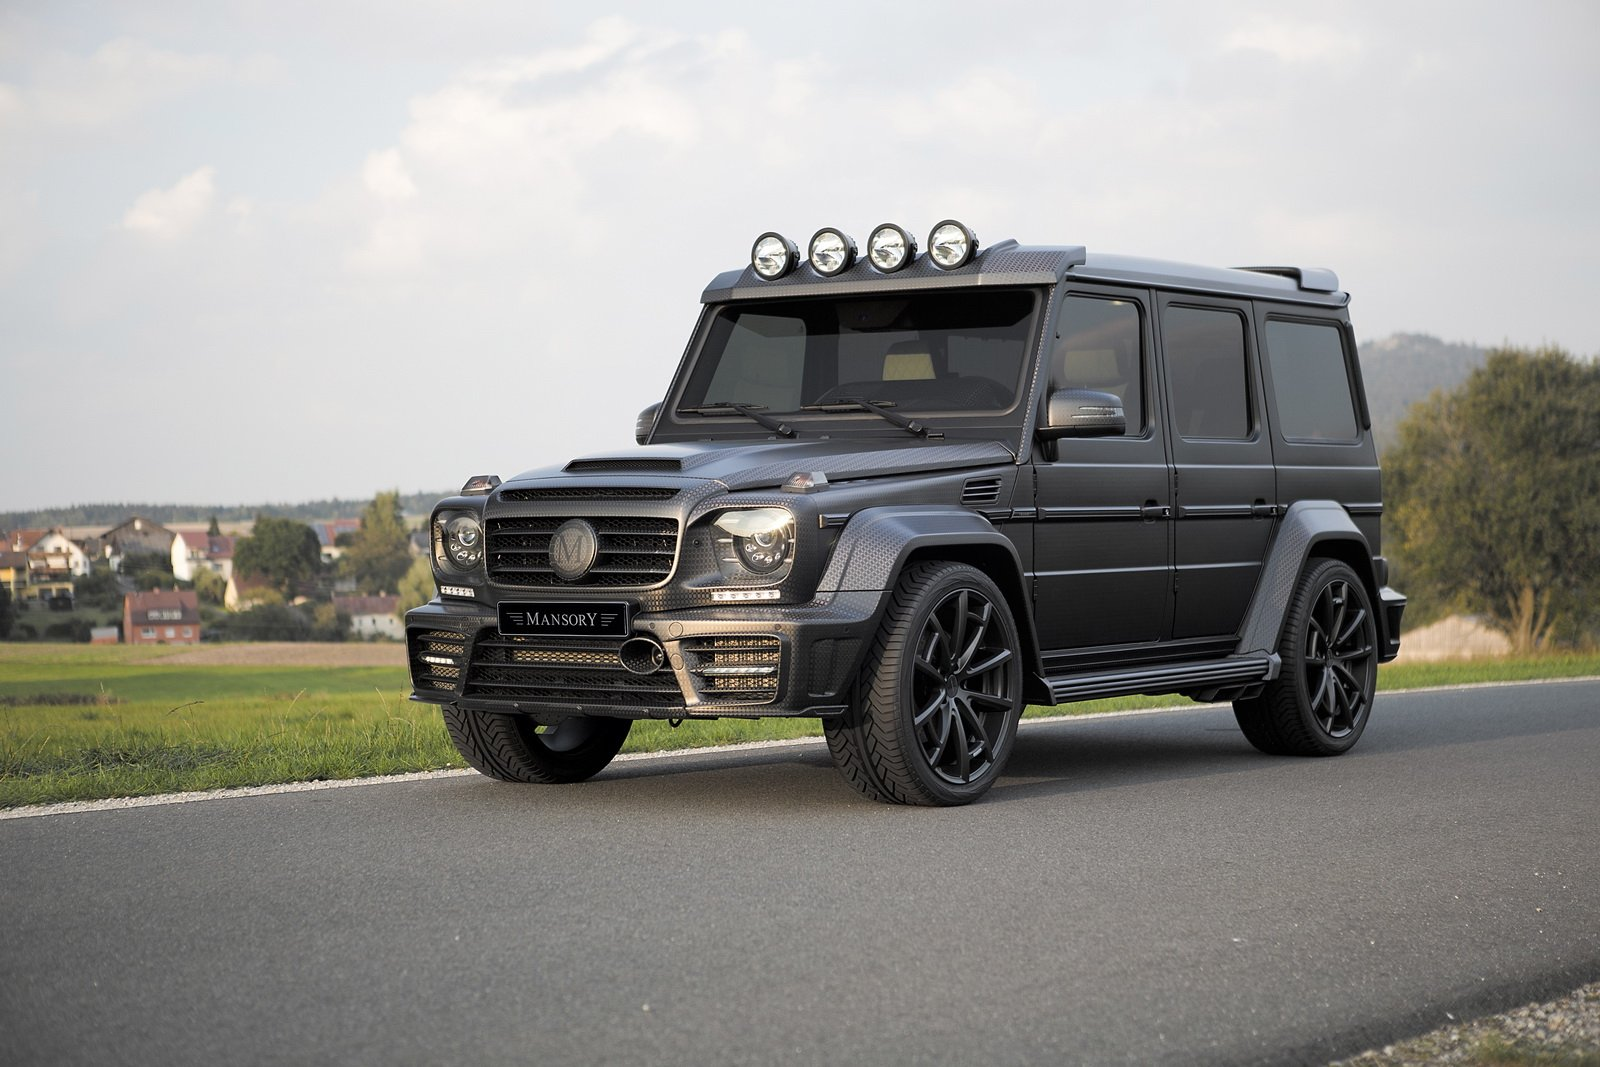 mansory mercedes g63 amg gronos black edition cars 4x4 modified black wallpaper 1600x1067. Black Bedroom Furniture Sets. Home Design Ideas